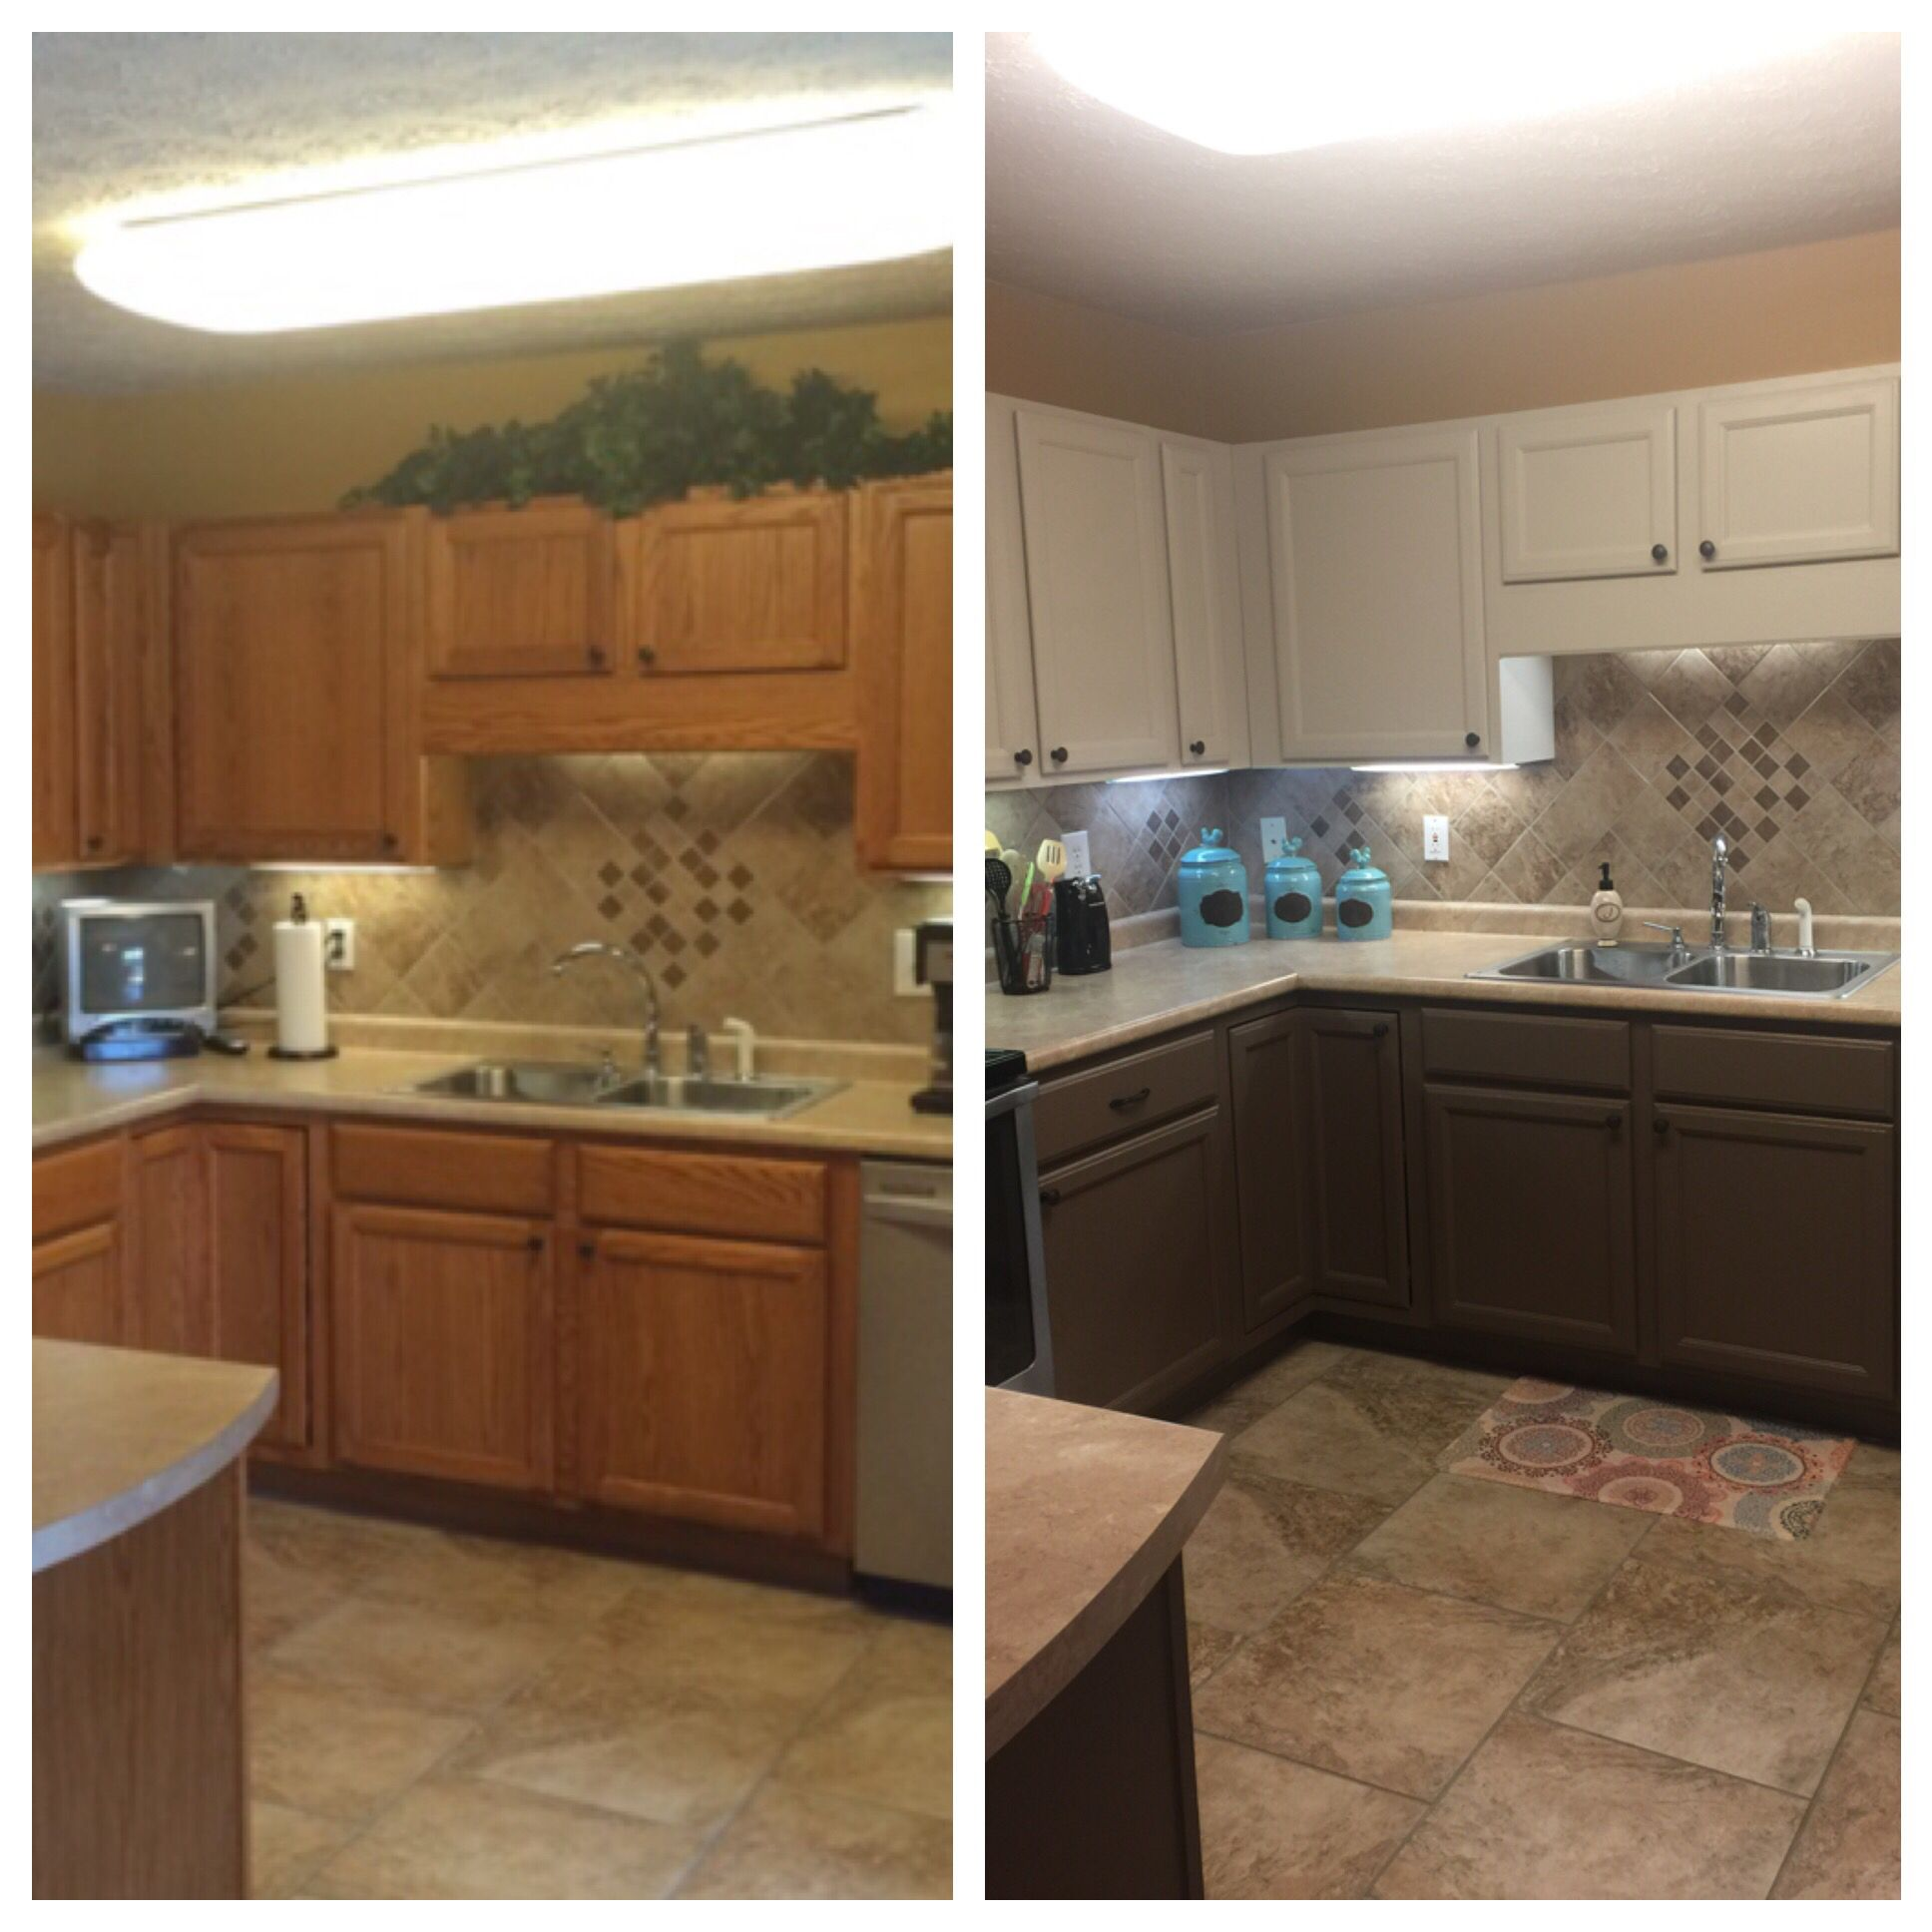 Basket beige sherwin williams - Accessible Beige Painted Honey Oak Cabinets Before And After Valspar Humboldt Earth On Bottom Sherwin Williams